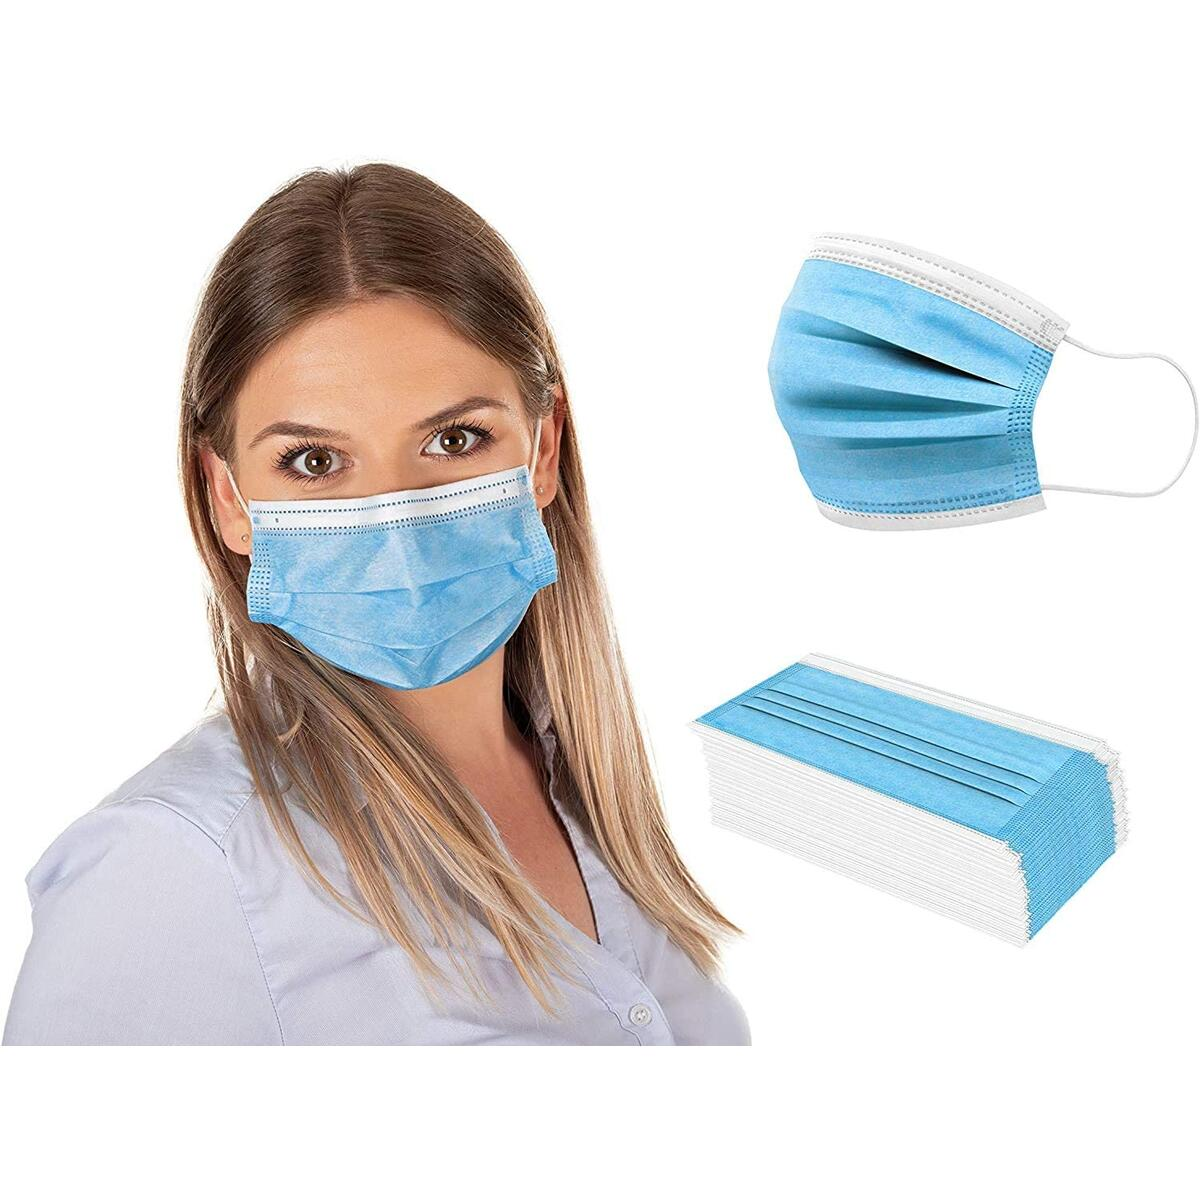 [Pack of 50] Fuye Blue Disposable Face Masks, Protective 3-Ply Breathable Comfortable Nose/Mouth Protection Covering for Home, Office & Outdoors, Elastic Ear Loop 3-Layer Safety Shield for Adults/Kids